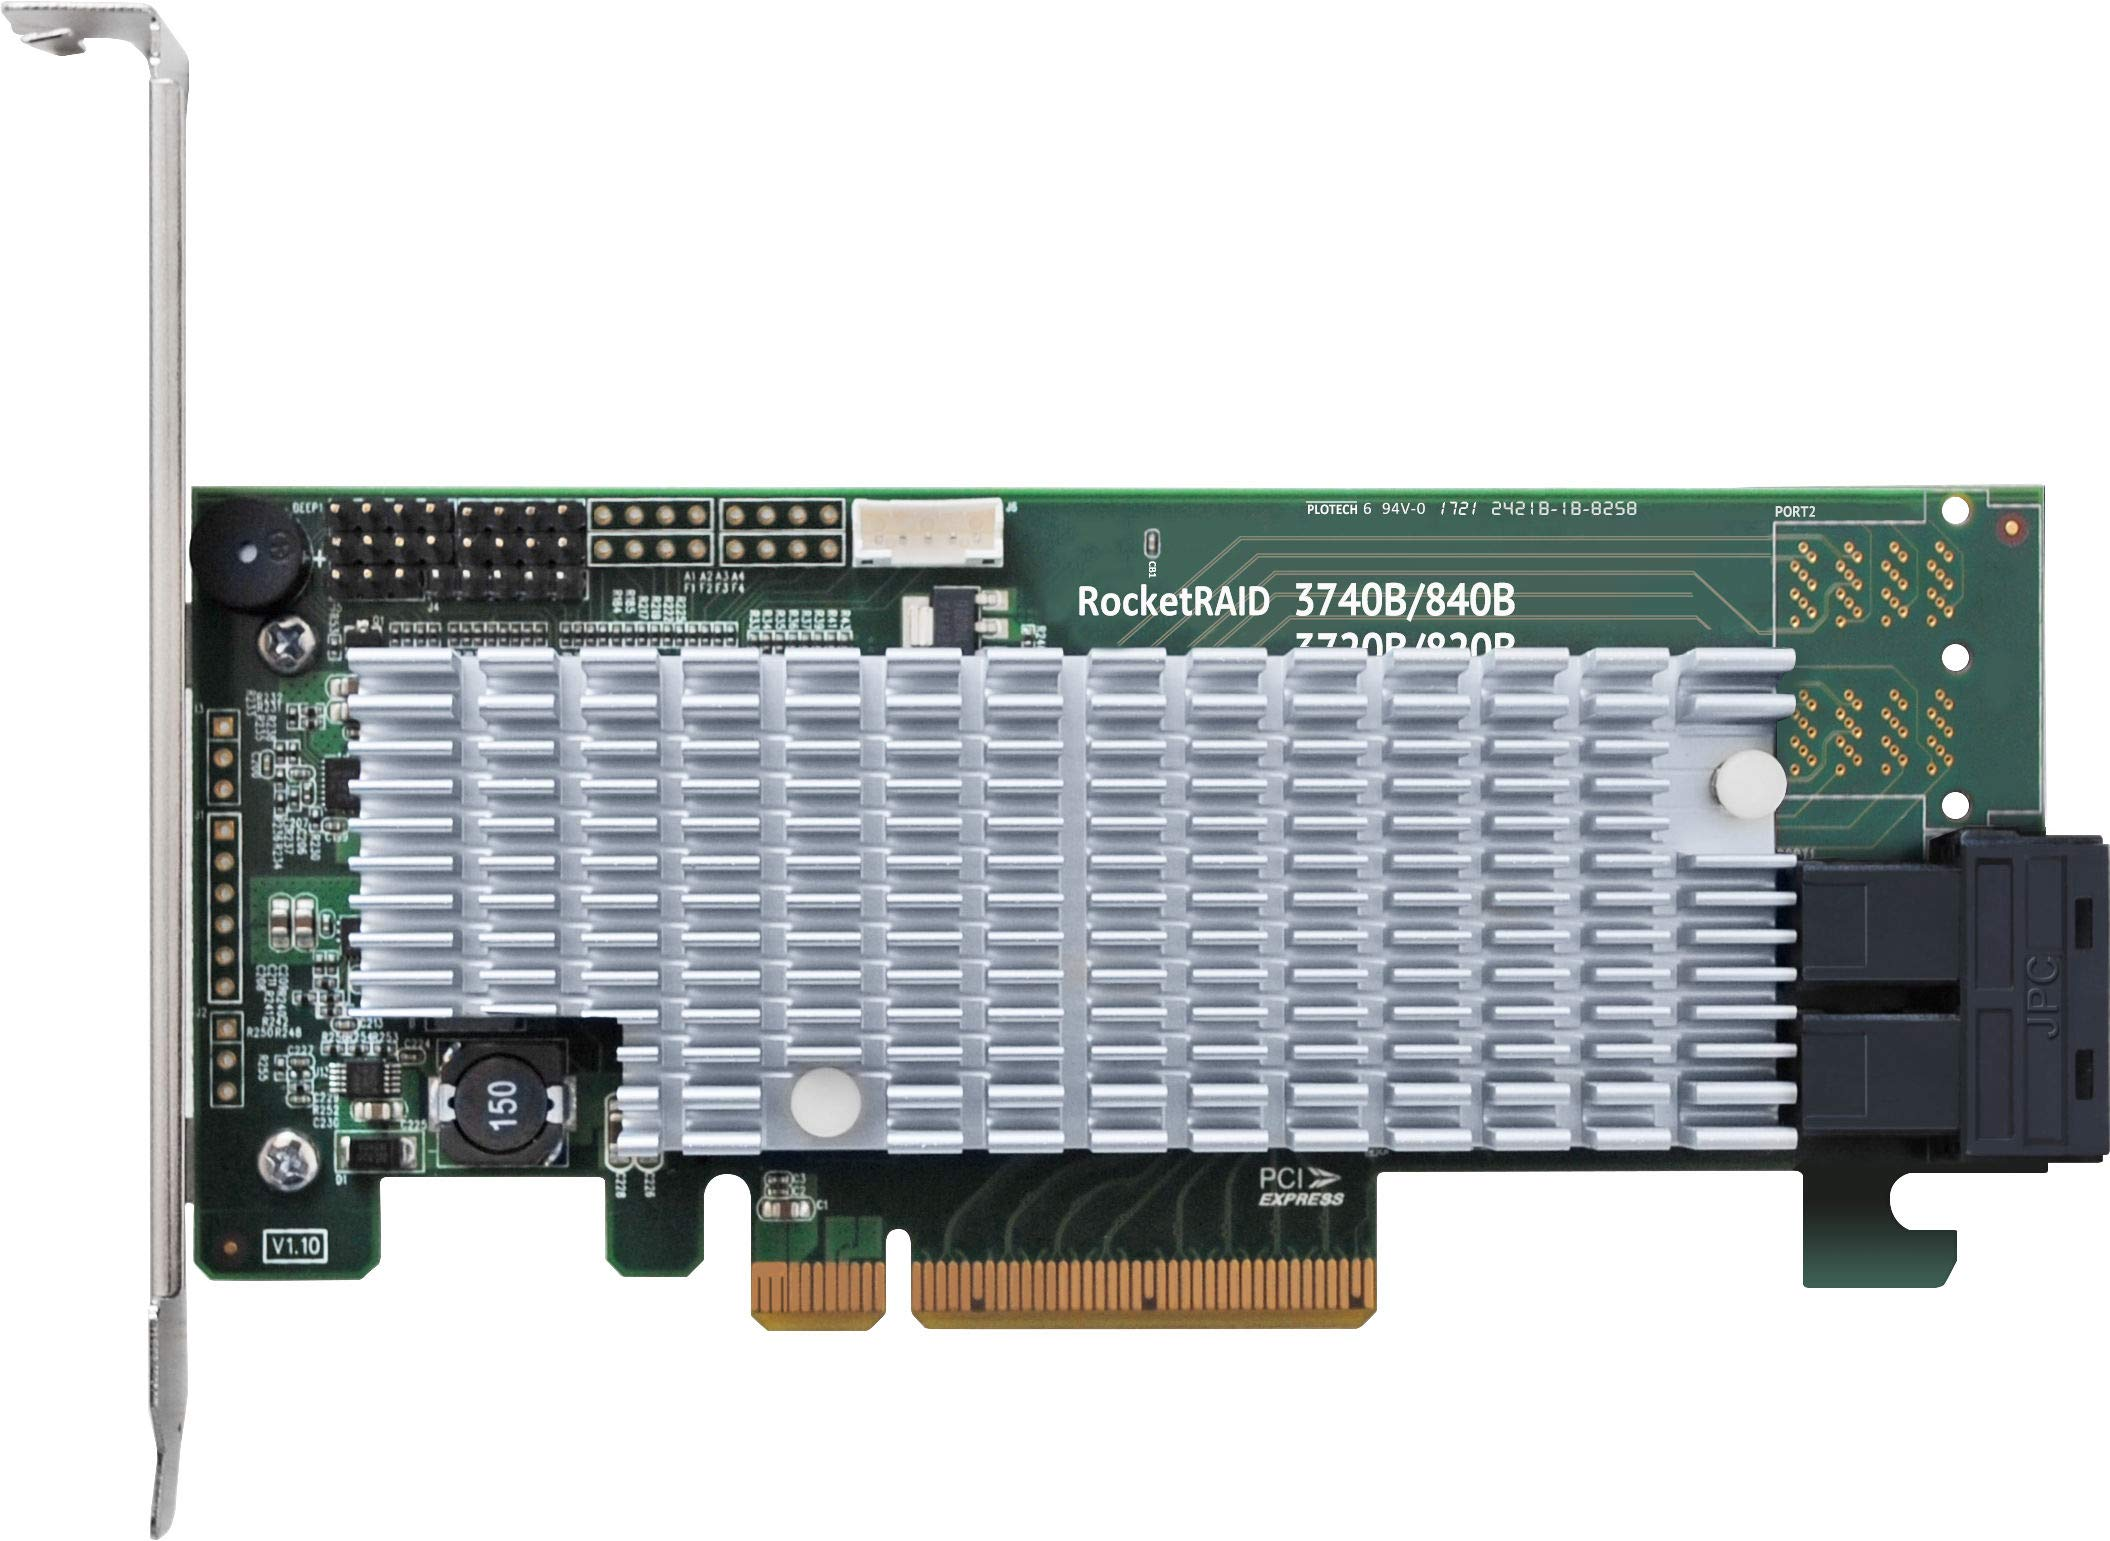 HighPoint RocketRAID 3720A 8-Channel 12Gb/s PCIe 3.0 x8 SAS RAID Controller